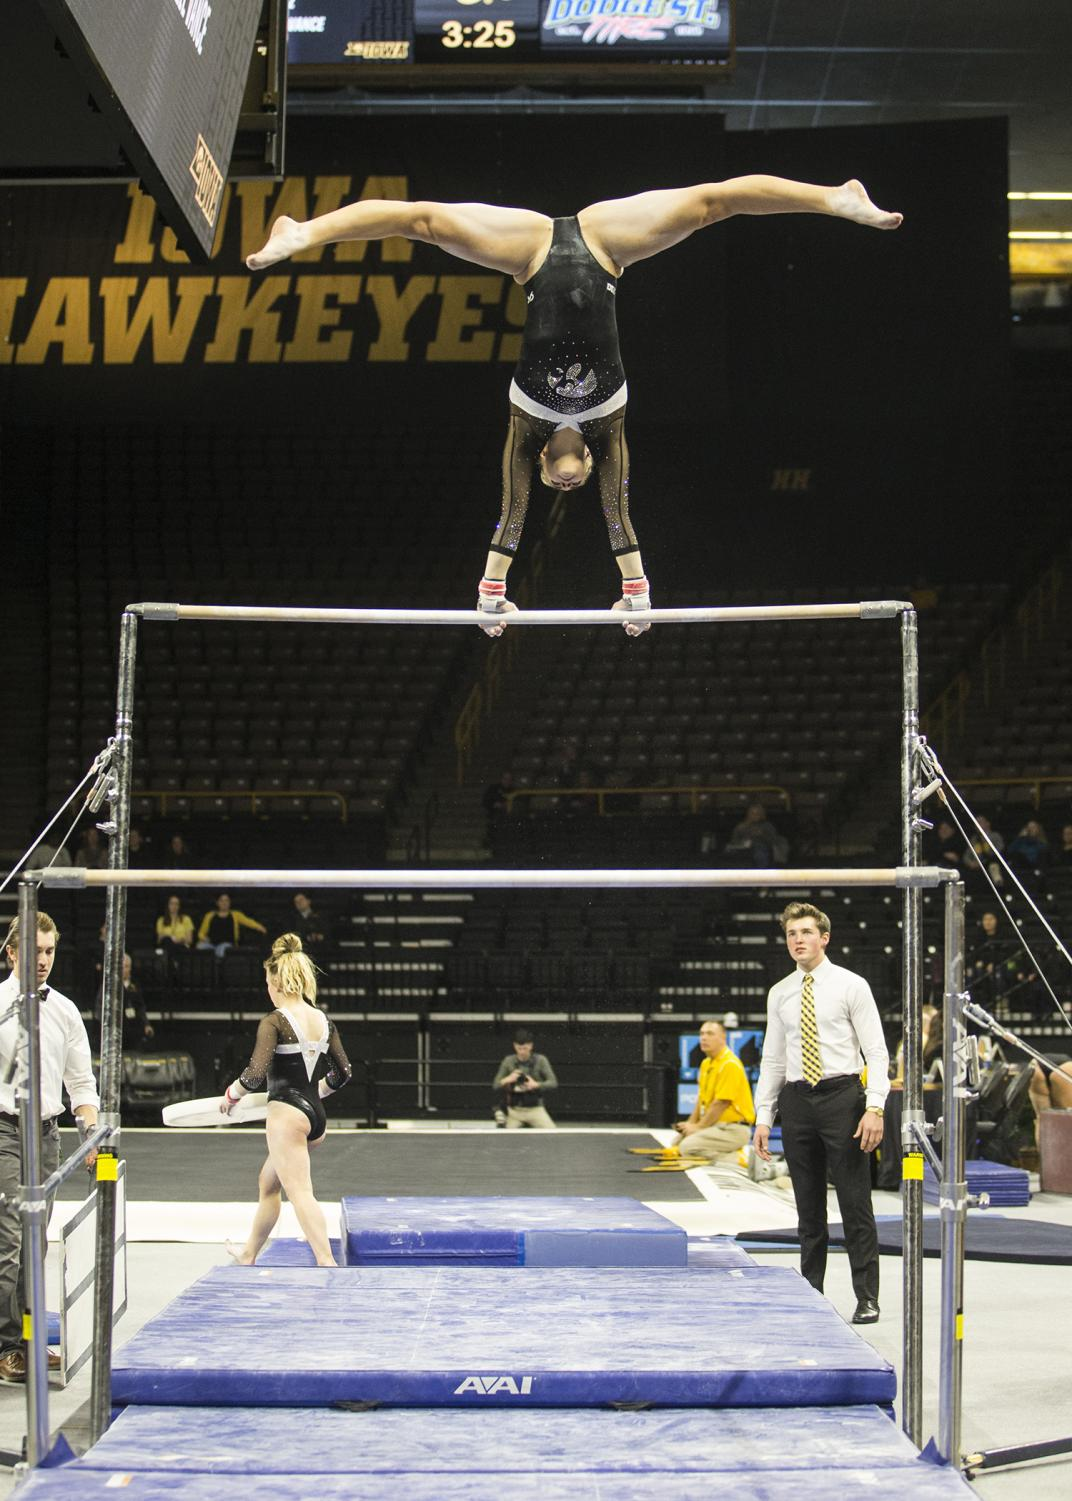 An+Iowa+gymnast+performs+on+the+uneven+bars+during+a+gymnastics+meet+against+Rutgers+on+Saturday%2C+Jan.+26%2C+2019.+The+Hawkeyes+defeated+the+Scarlet+Knights+194.575+to+191.675.+